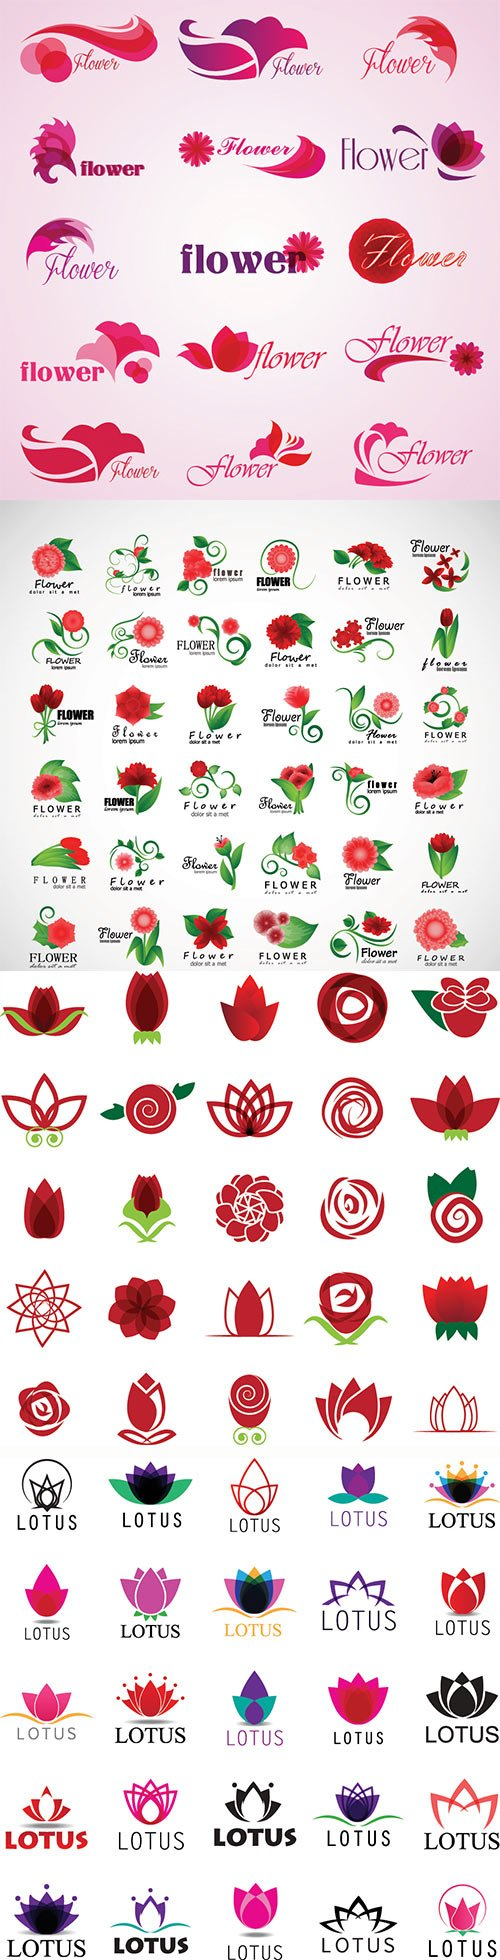 Flower icons vector set